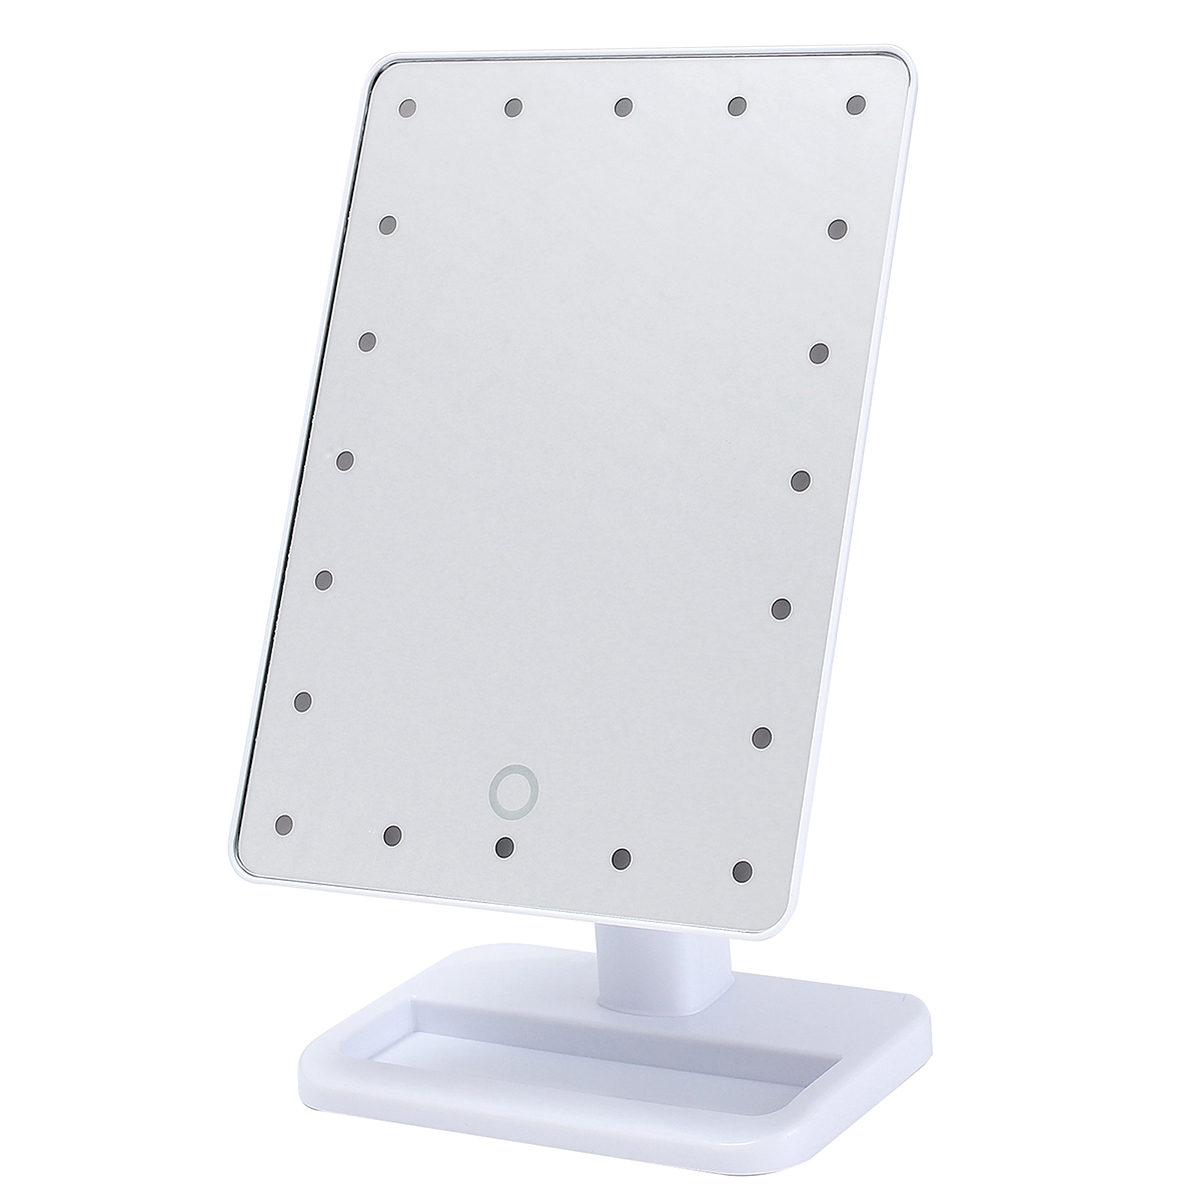 LED Makeup Mirror Wide View Tools Illuminated Make Up Cosmetic Bathroom Shaving Vanity Mirrors